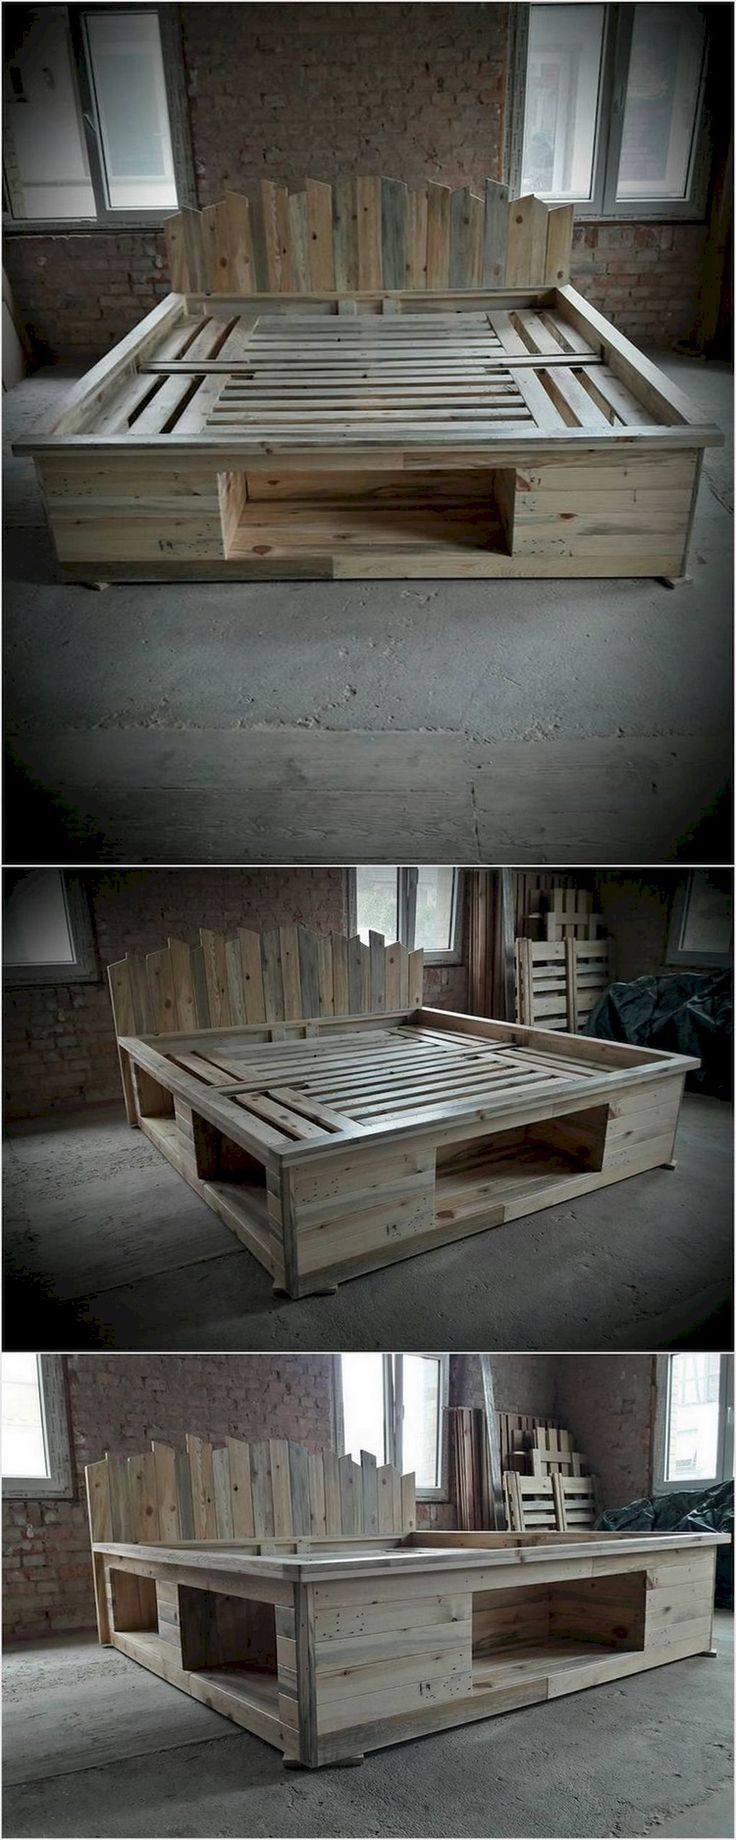 Awesome 60 Creative DIY Wodden Pallet Furniture Projects https://homeastern.com/2017/10/01/60-creative-diy-wodden-pallet-furniture-projects/